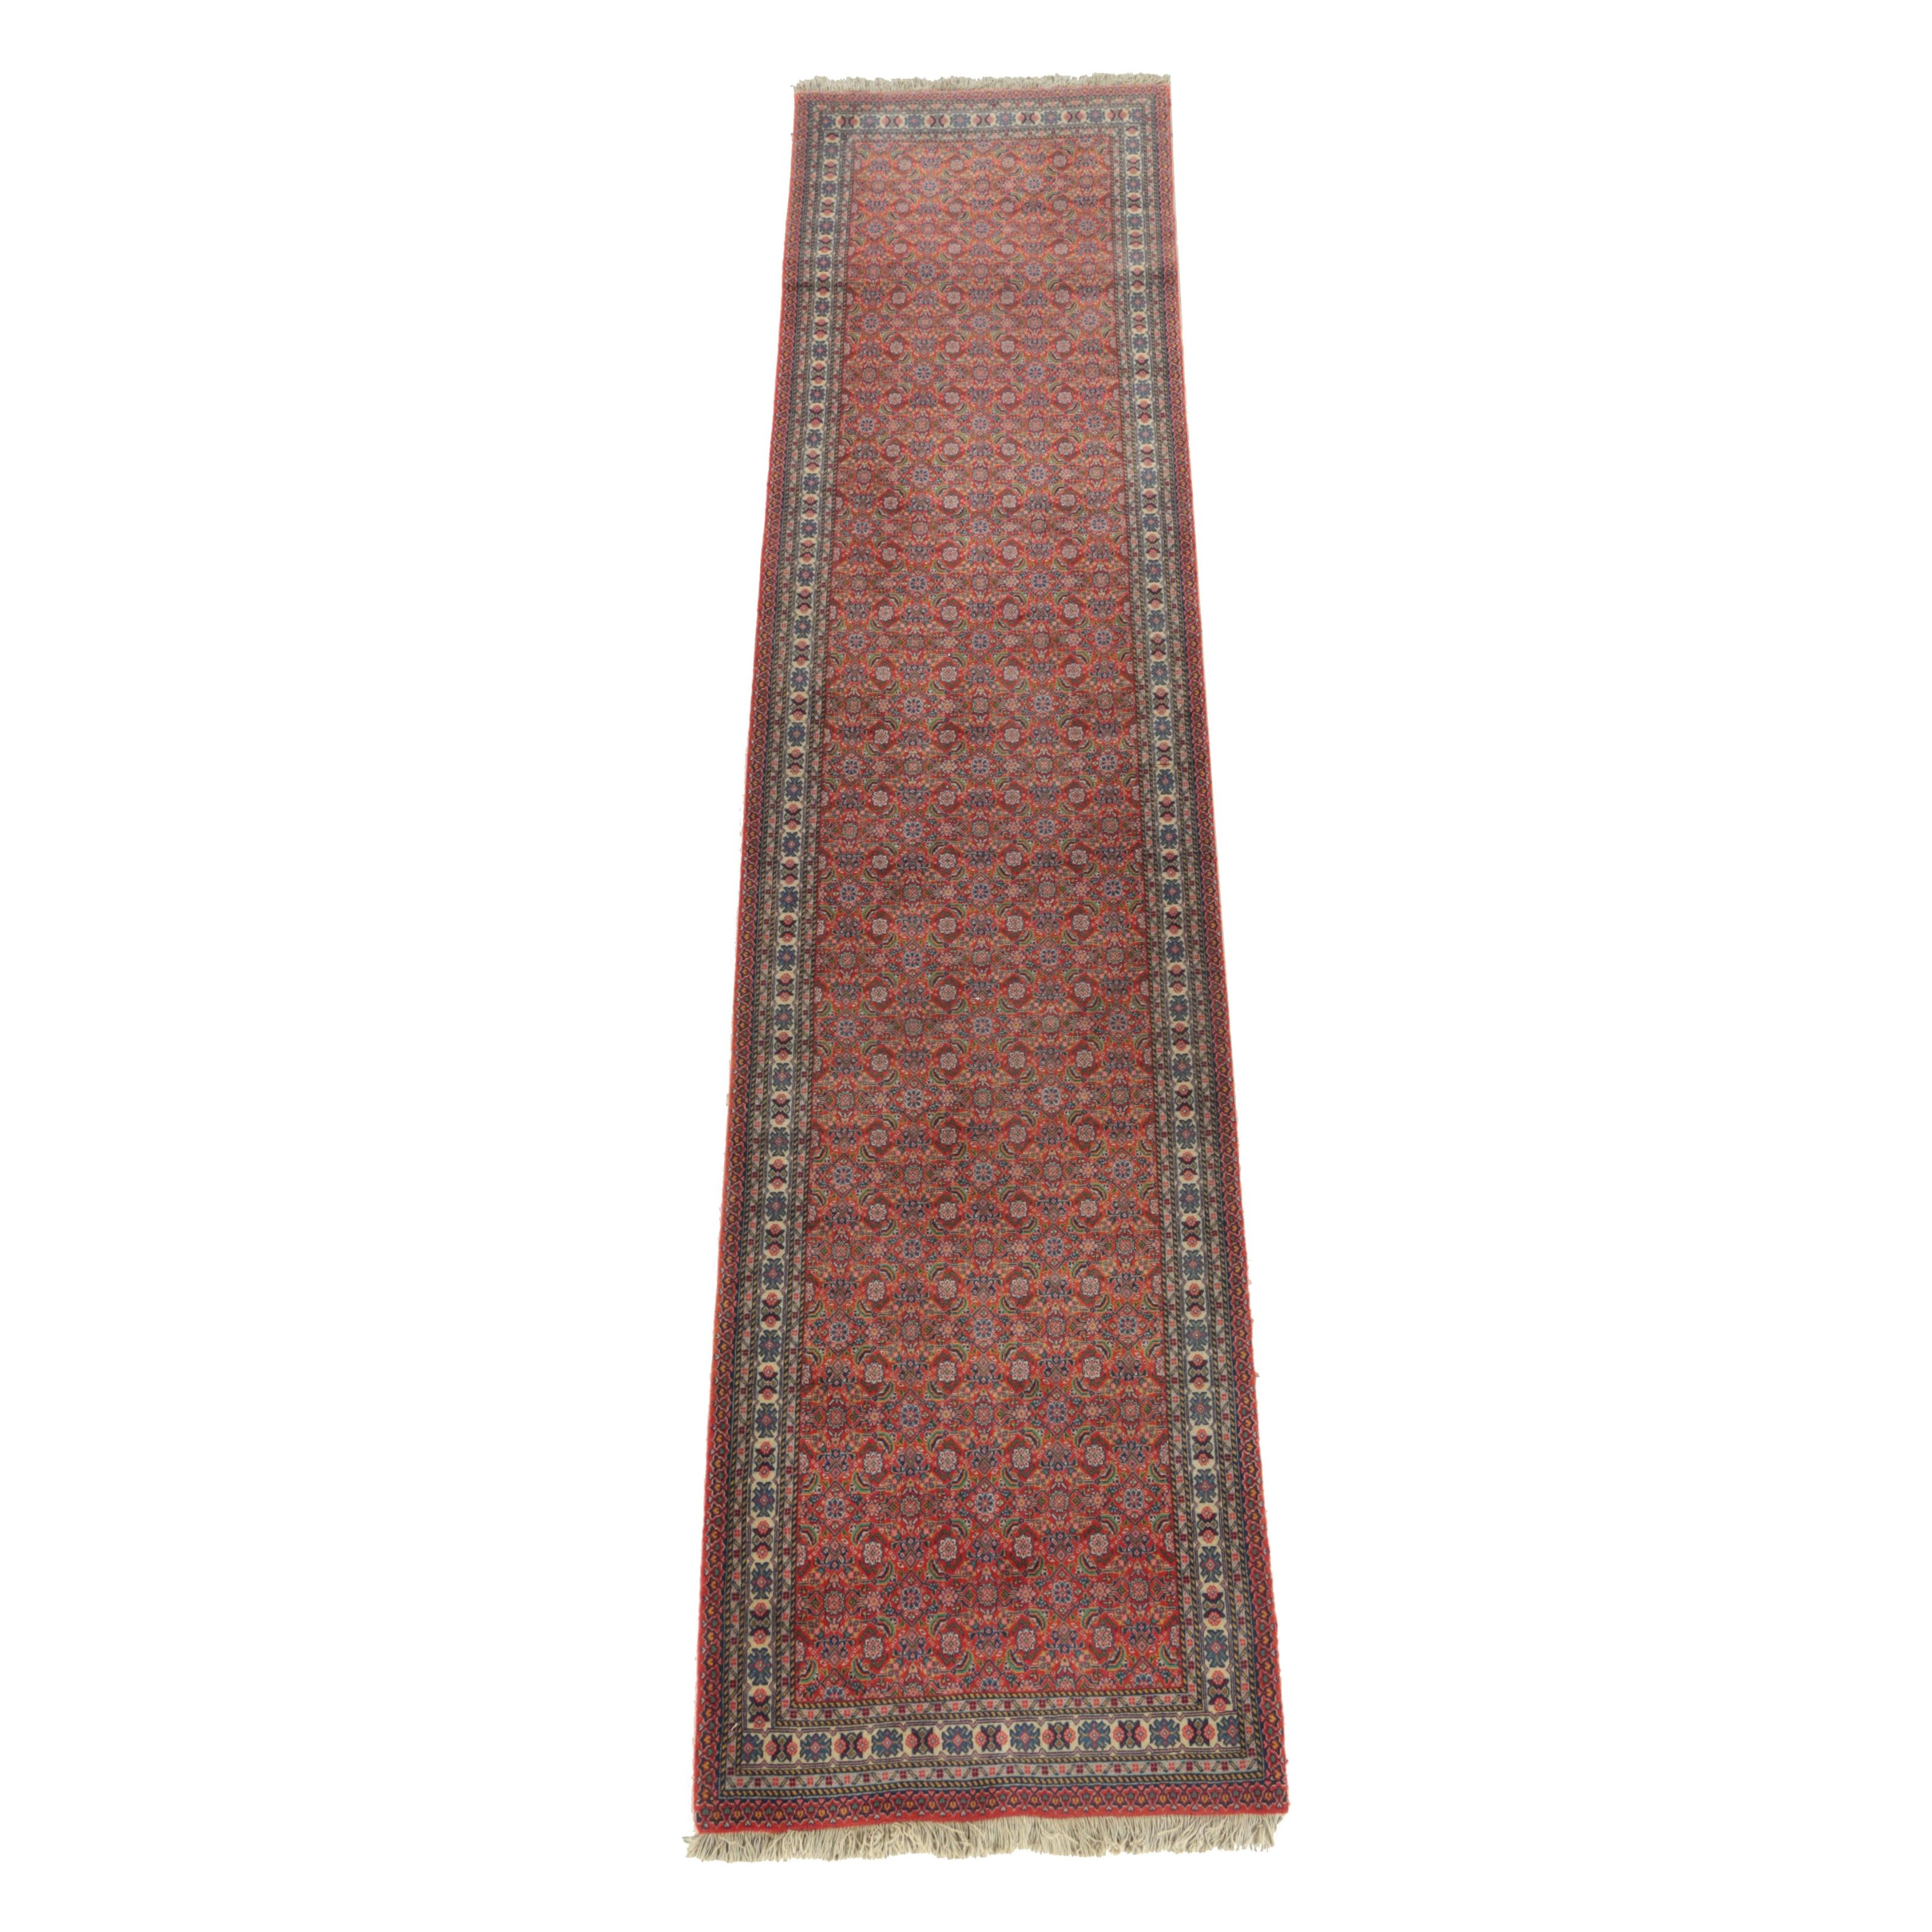 Hand-Knotted Persian Tabriz Wool Carpet Runner, 1960s